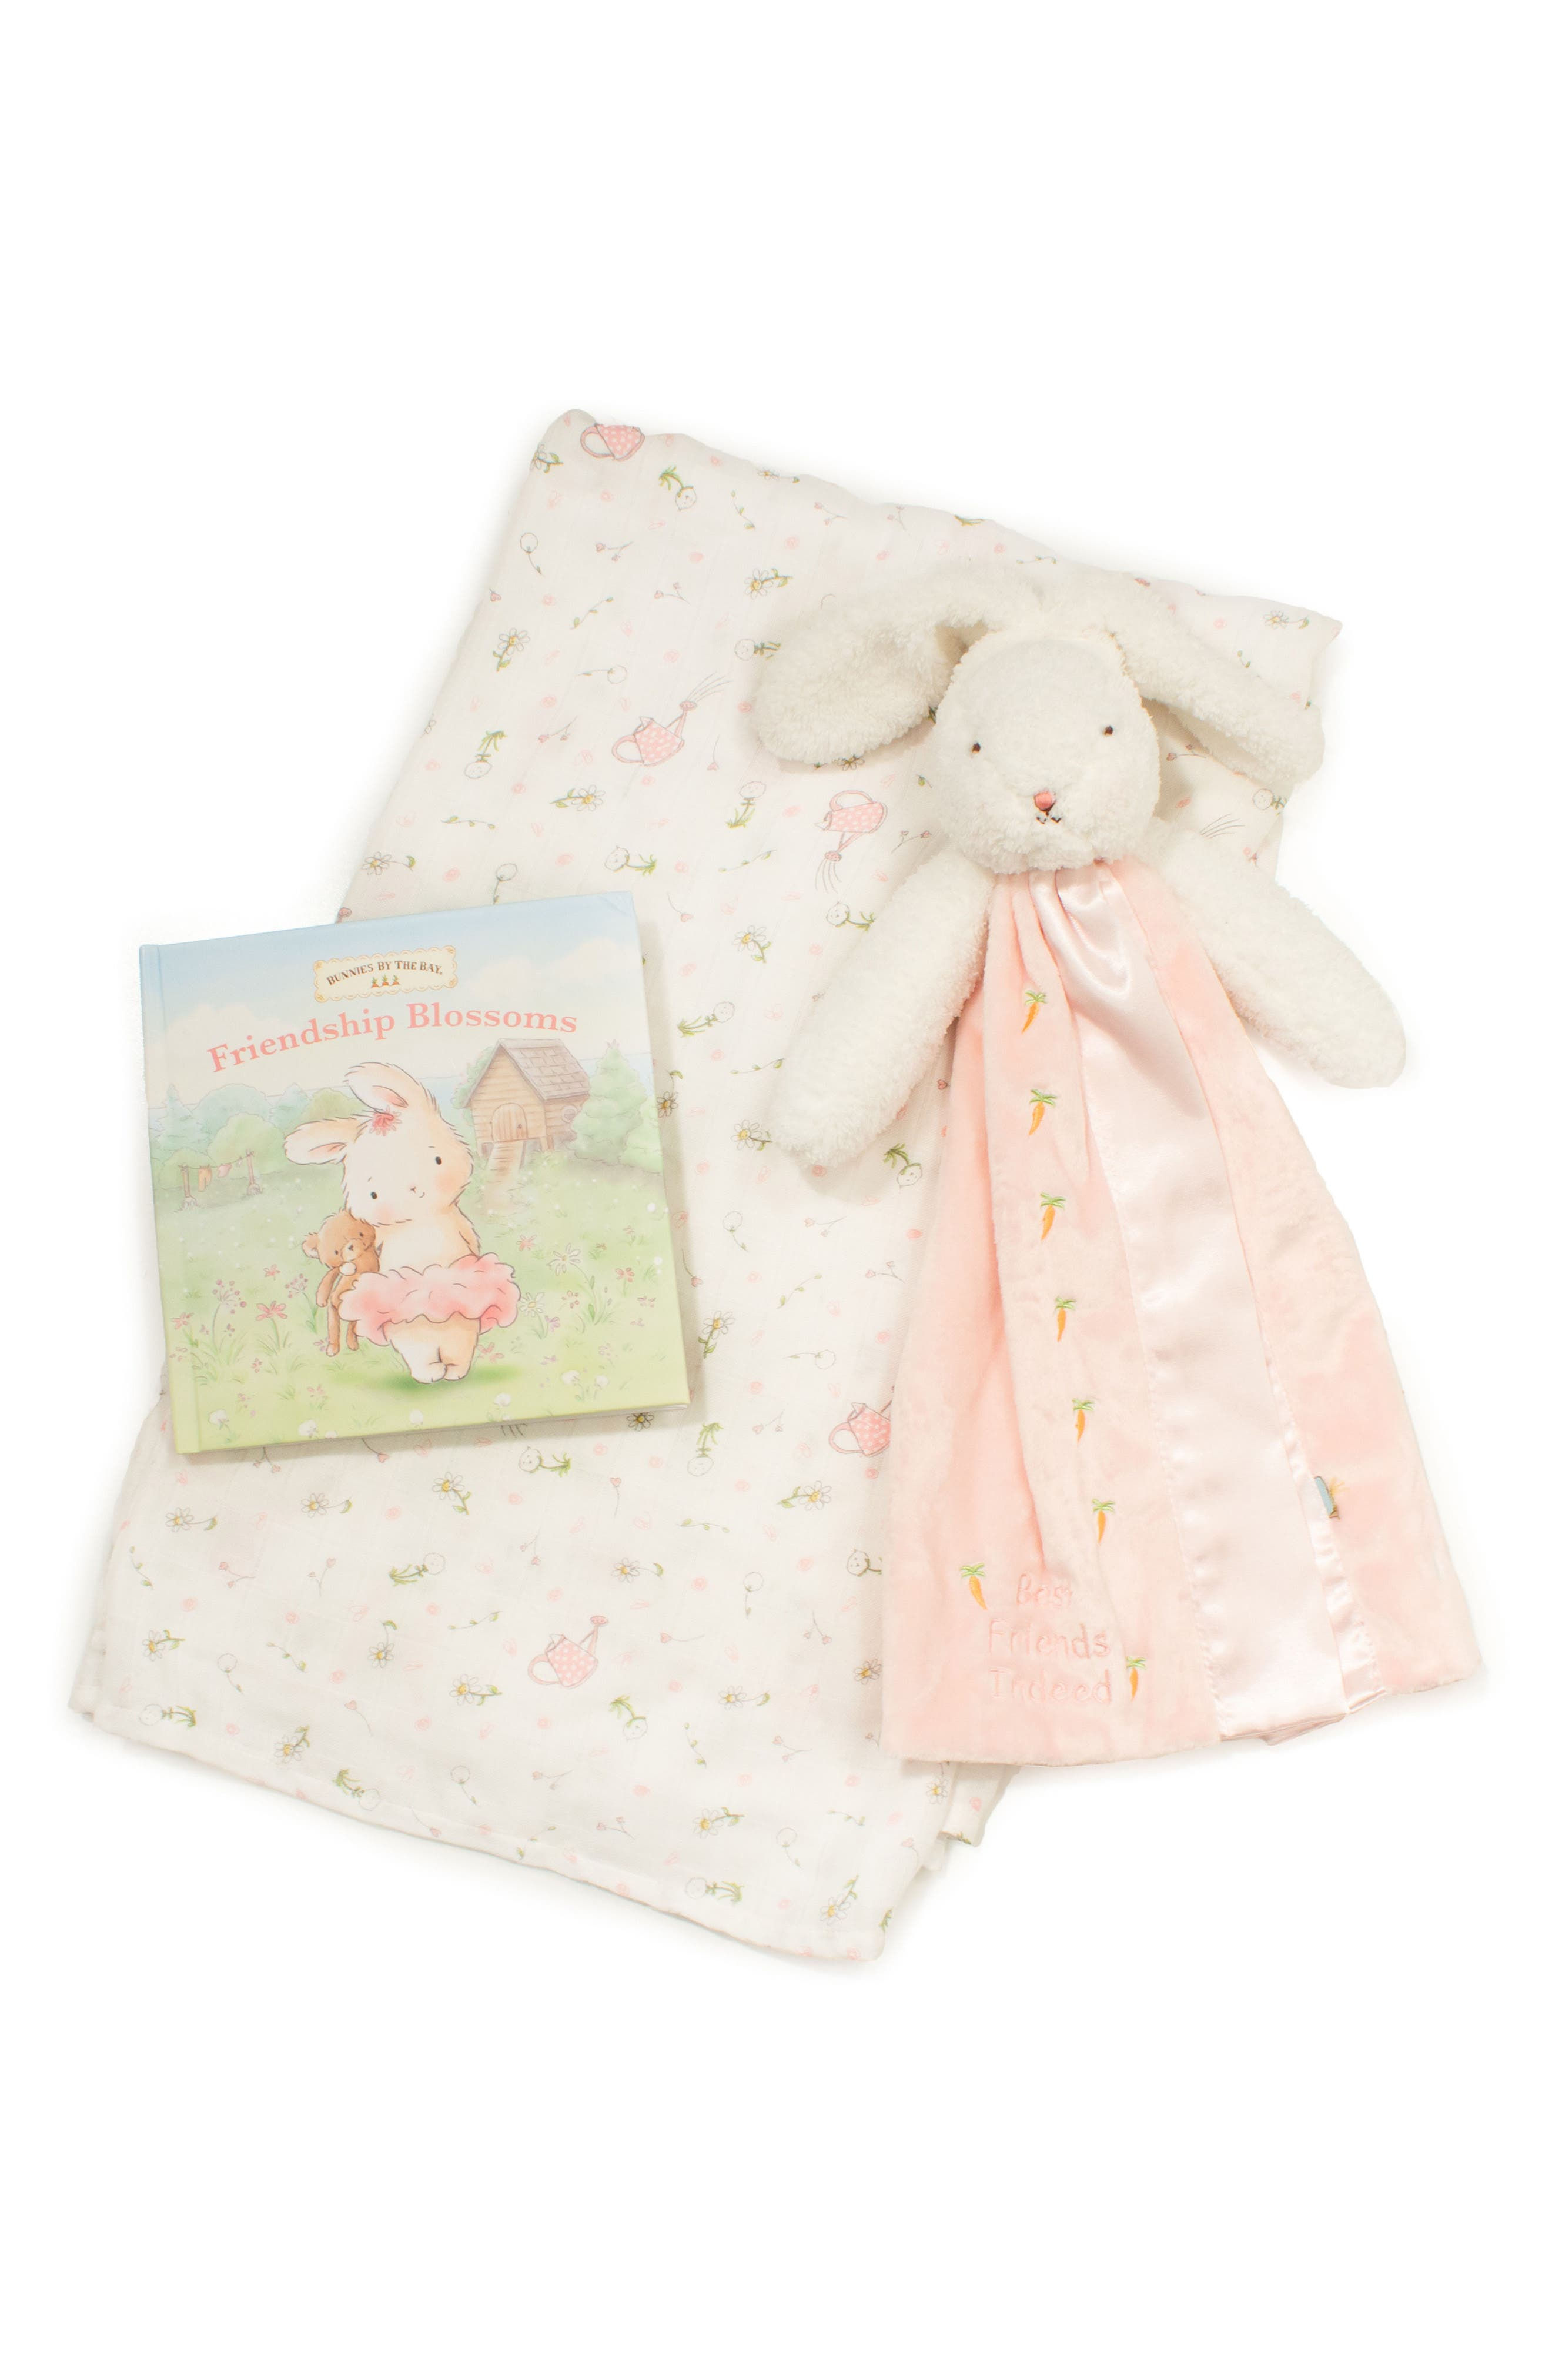 Blossom Read Me Another One 3-Piece Gift Set,                             Main thumbnail 1, color,                             650